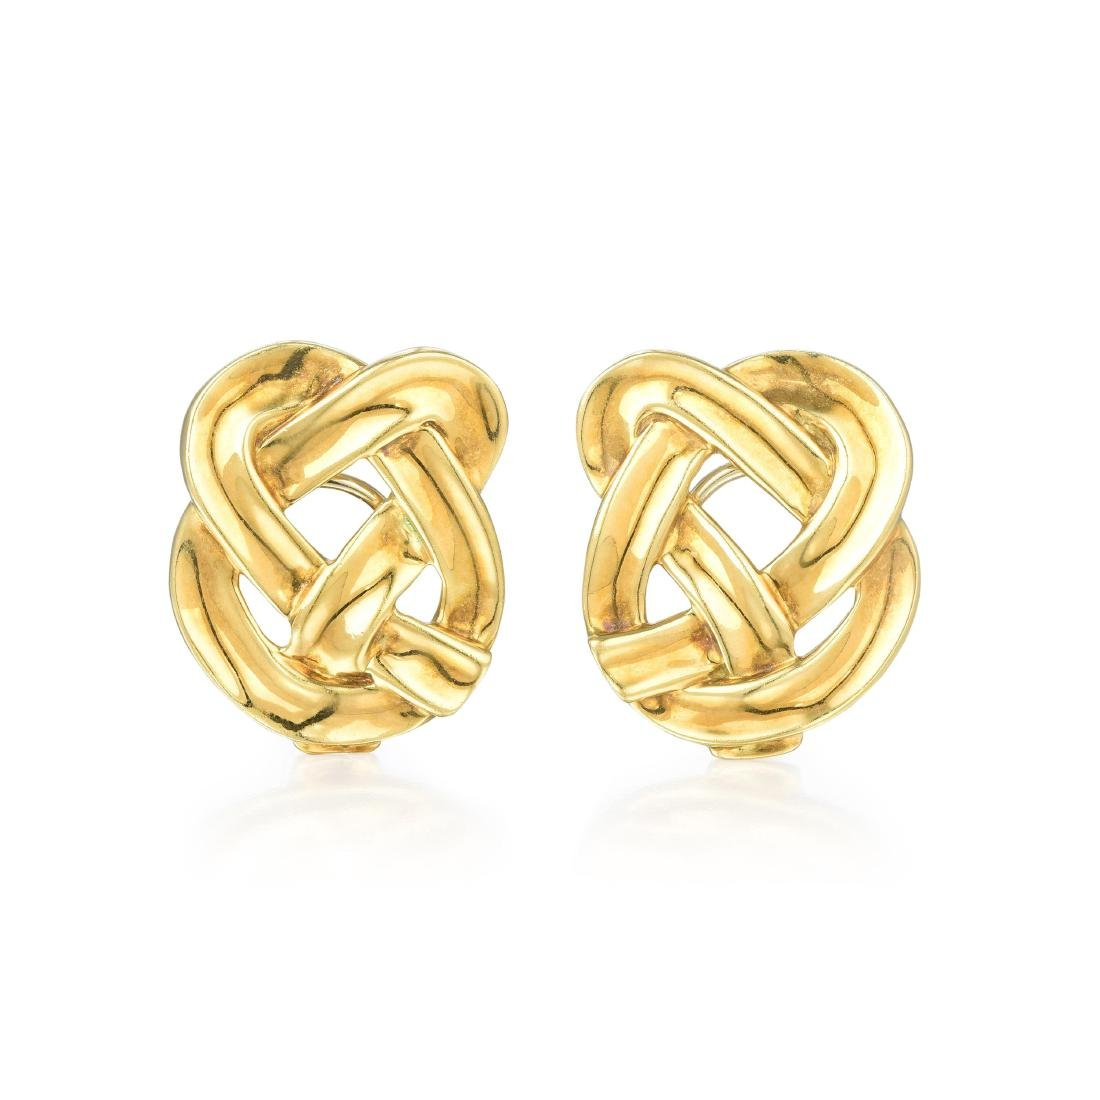 Tiffany & Co. Gold Knot Earrings